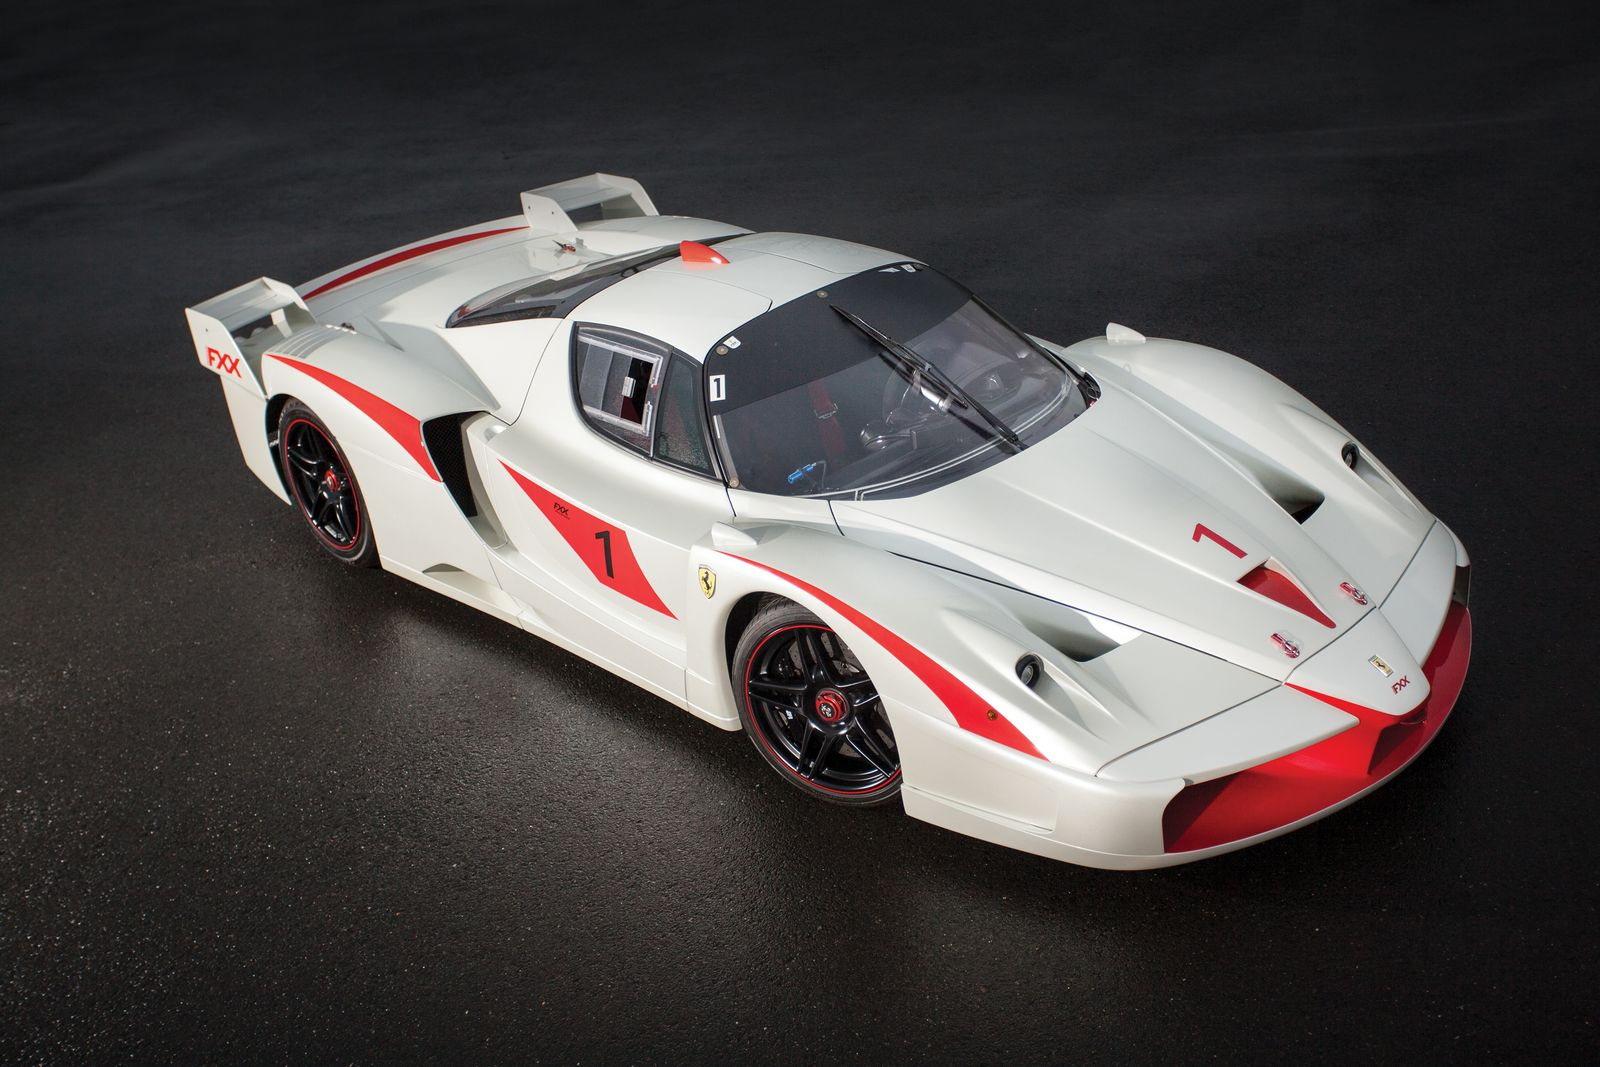 Miami Car Show >> Ferrari FXX Evoluzione Sells for $1.6 Million at Auction - GTspirit